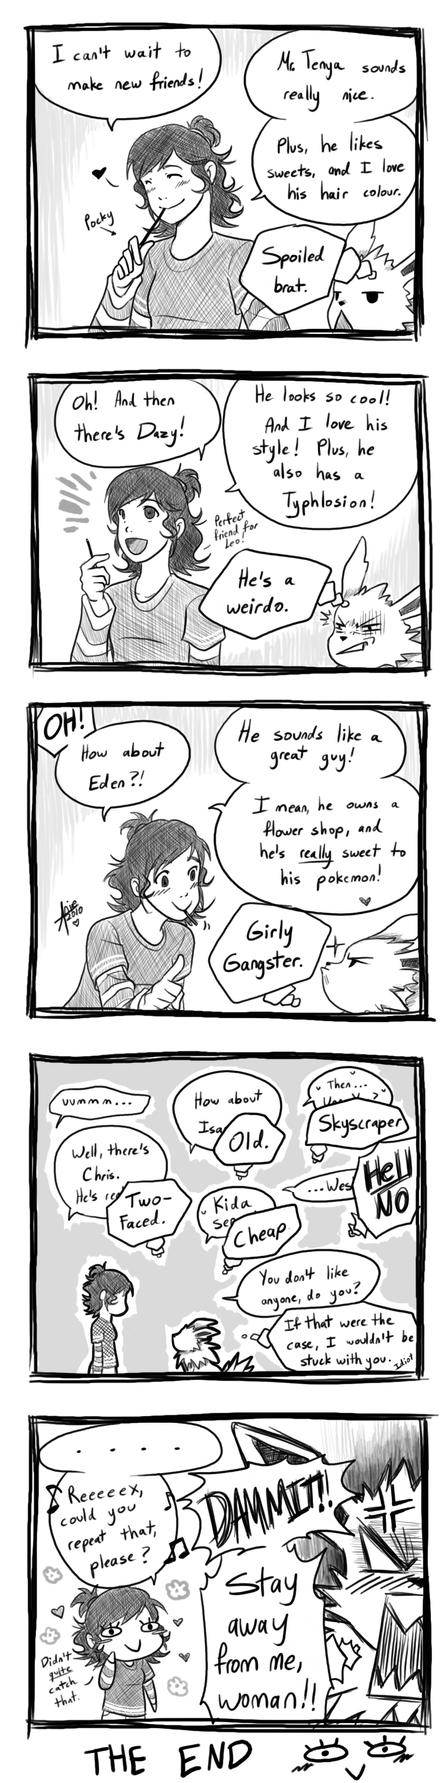 Potential Male Friends - UBF by Aniemae on DeviantArt